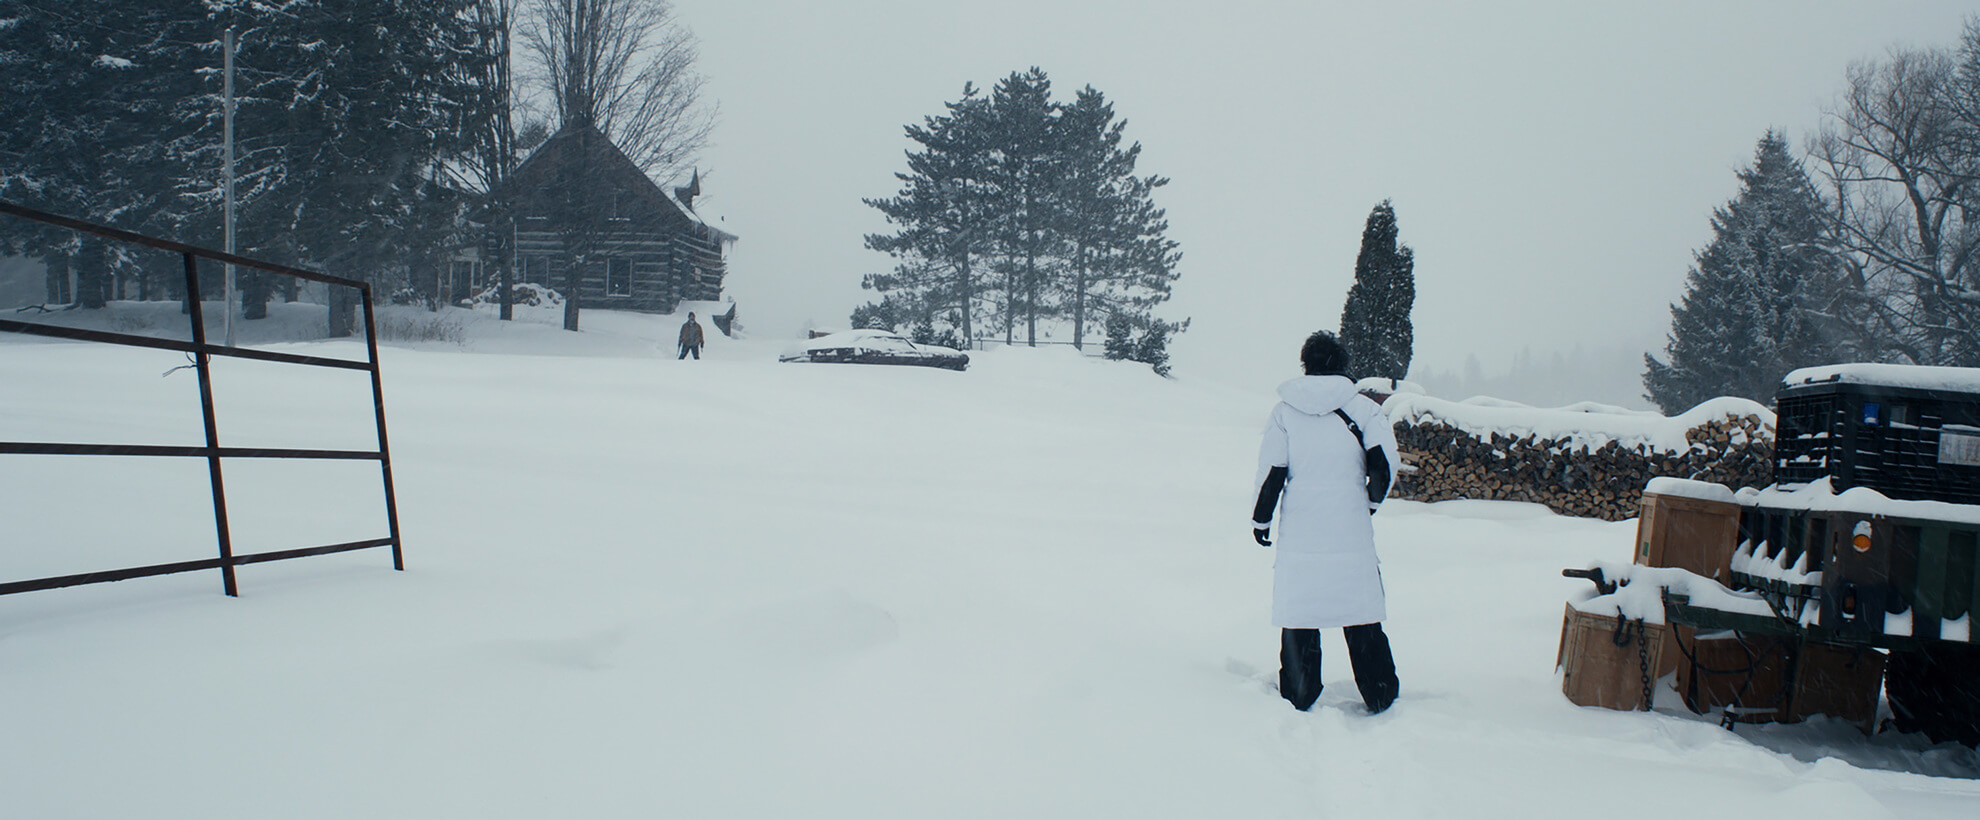 In the snow - still from Fatman (2020)